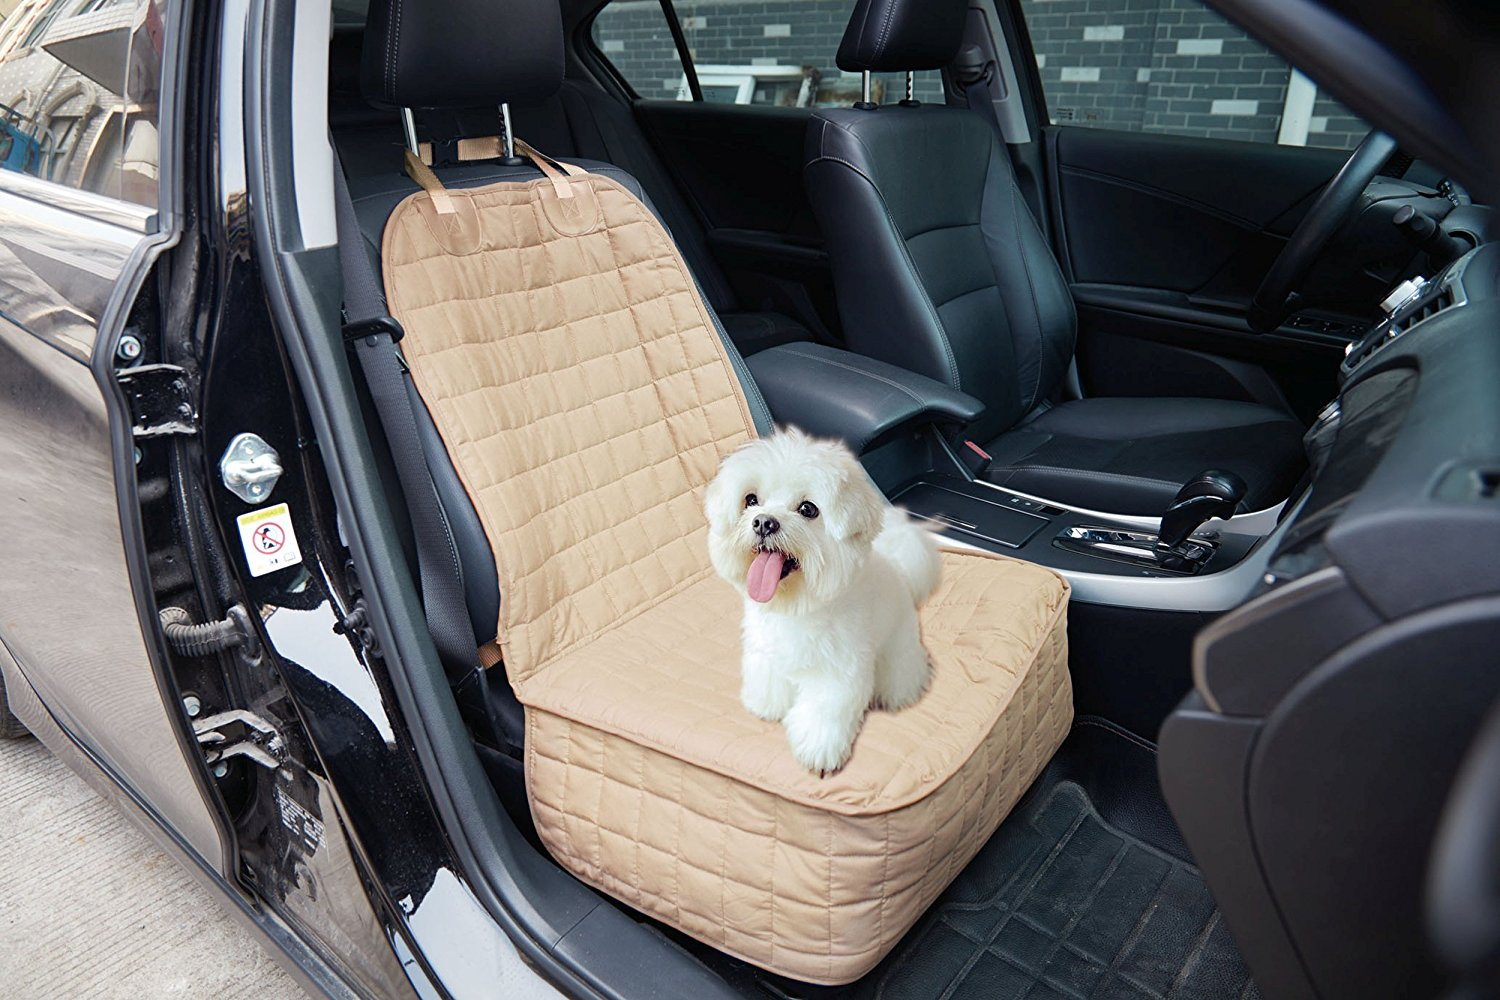 Dog Car Protector >> Pet Dog Car Seat Cover Protector Waterproof Nonslip Seat Covers For